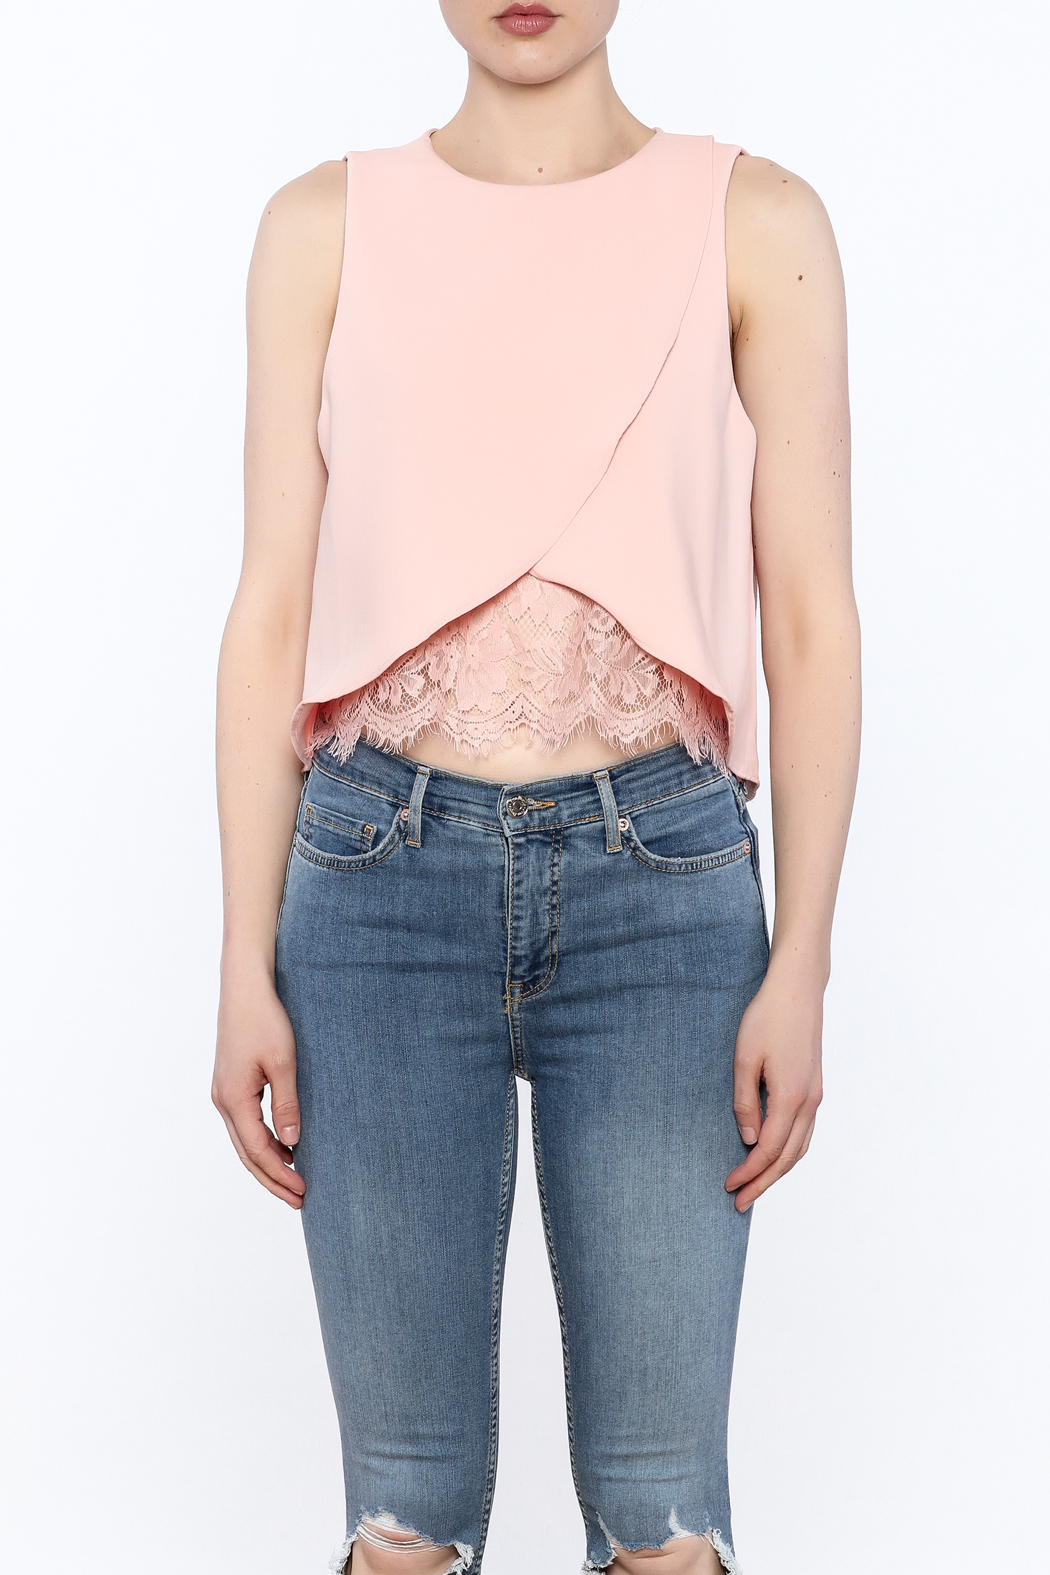 Do & Be Asymmetrical Crop Top - Front Full Image